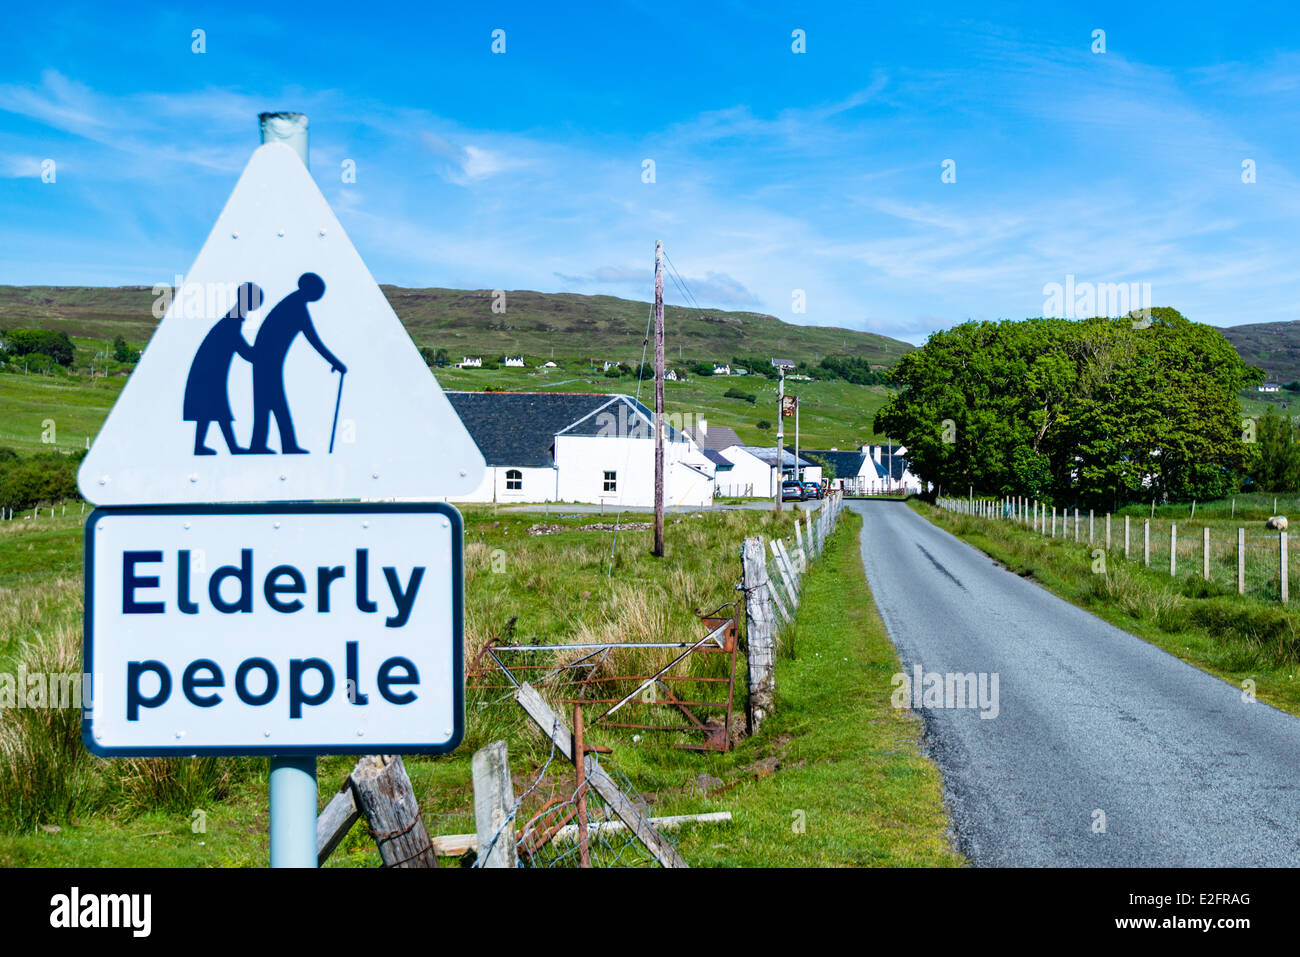 traffic sign for paying attention for elderly people - Stock Image